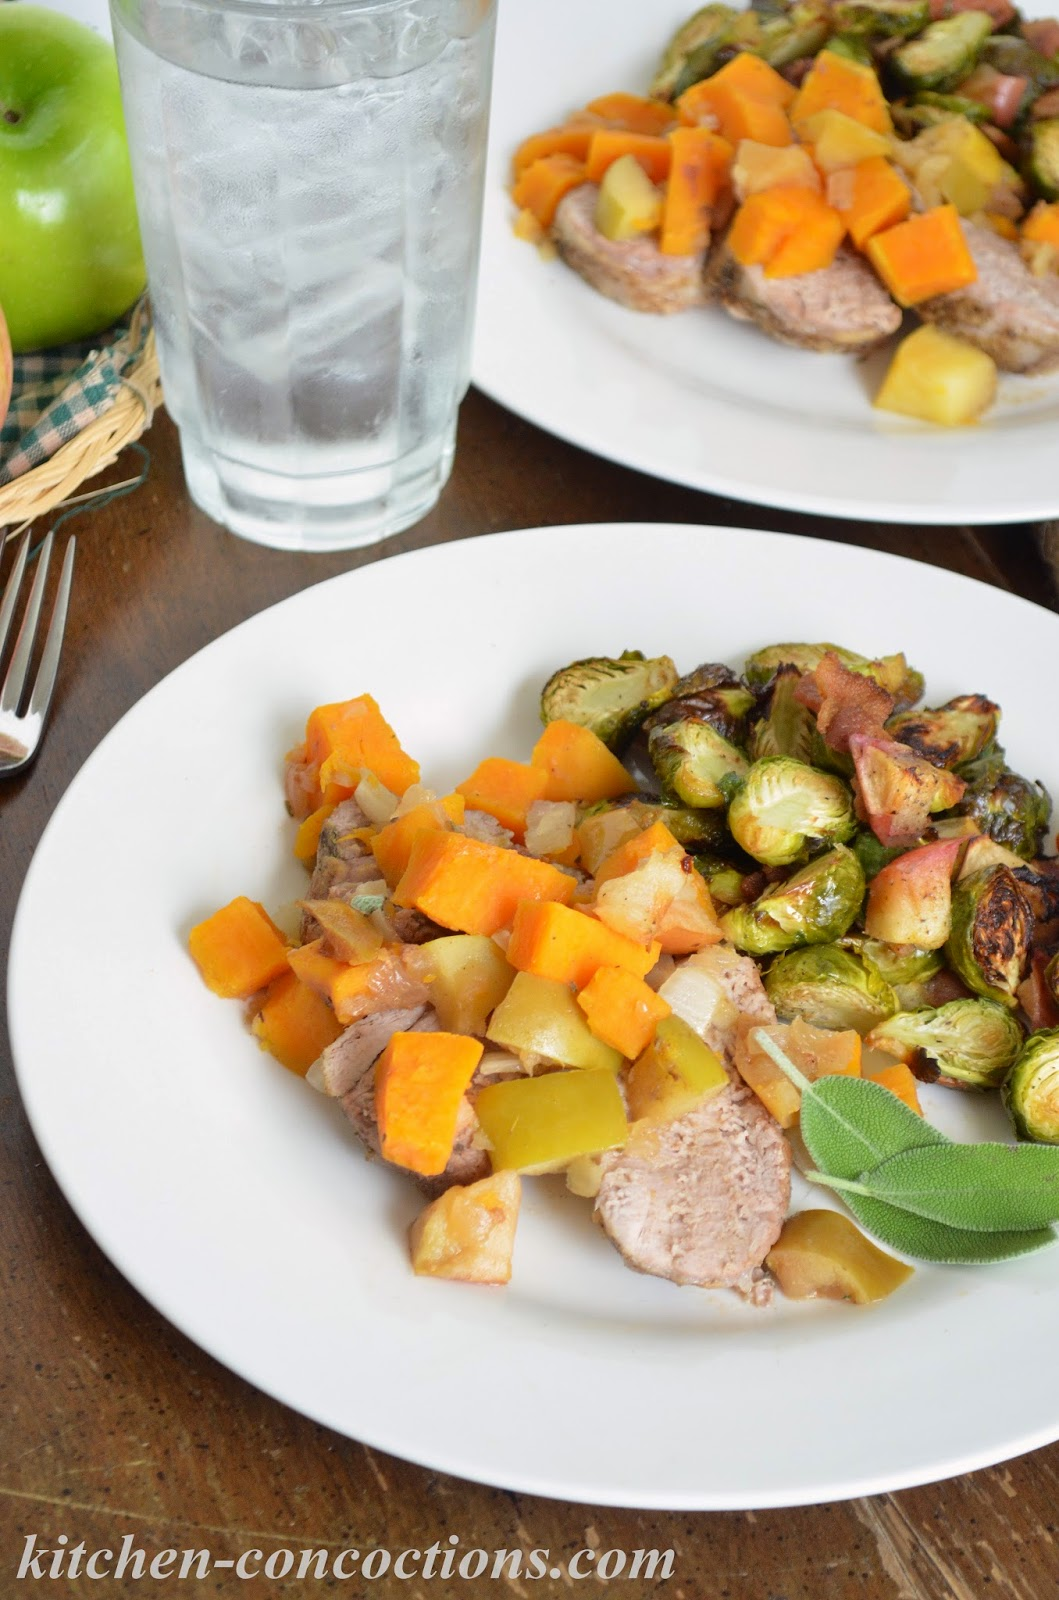 Slow Cooker Pork Loin With Apples And Sweet Potatoes By Heather H Of Kitchen Concoctions Www Kitchen Concoctions Com Printable Version